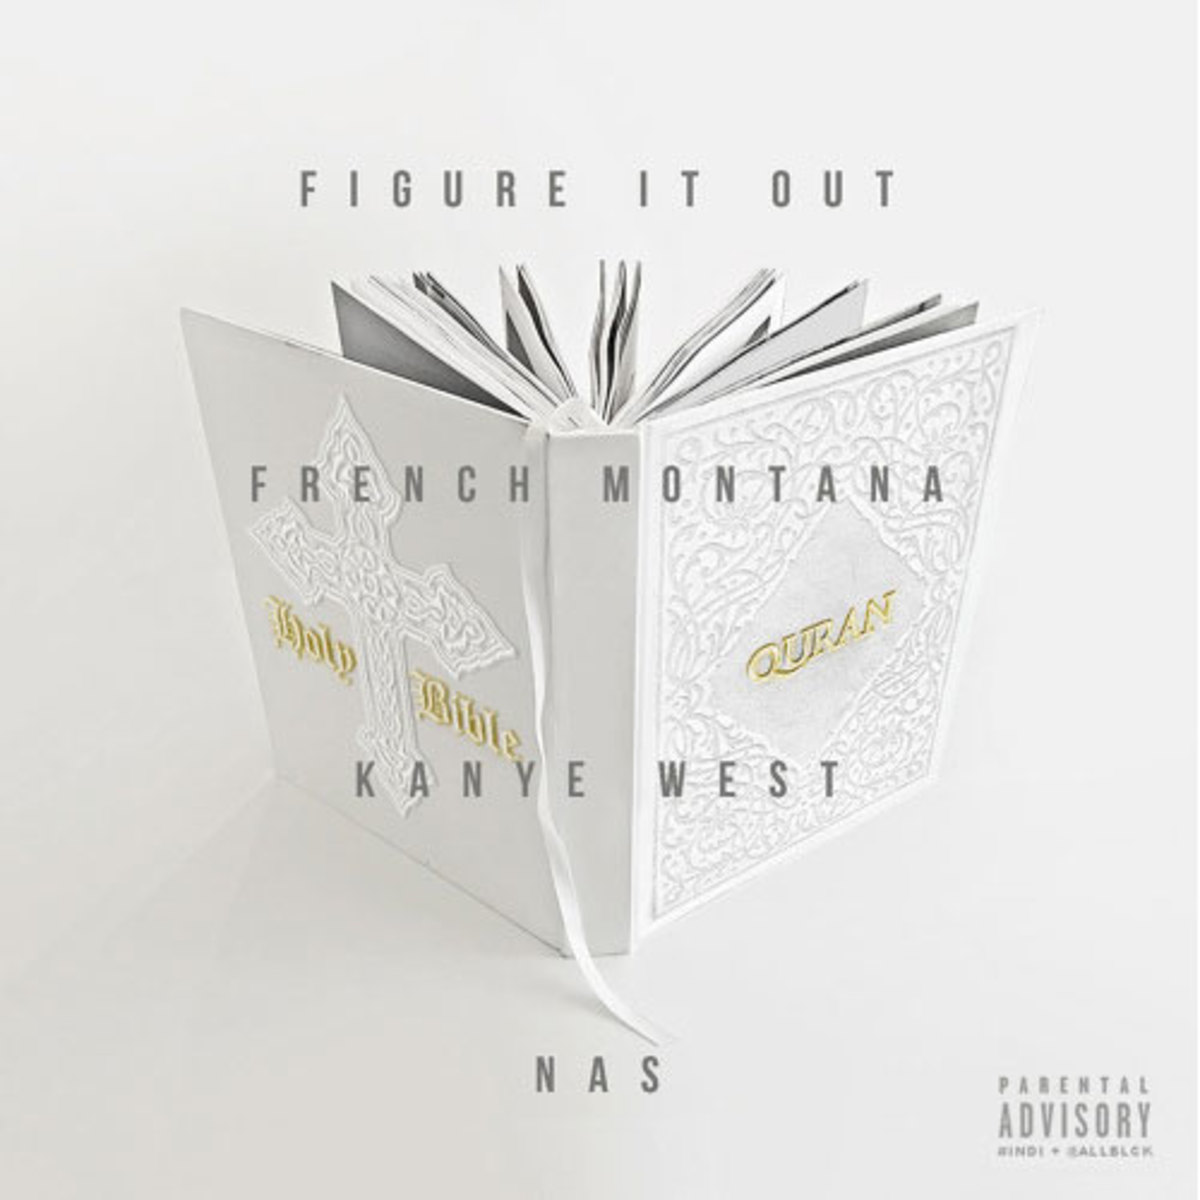 french-montana-figure-it-out.jpg